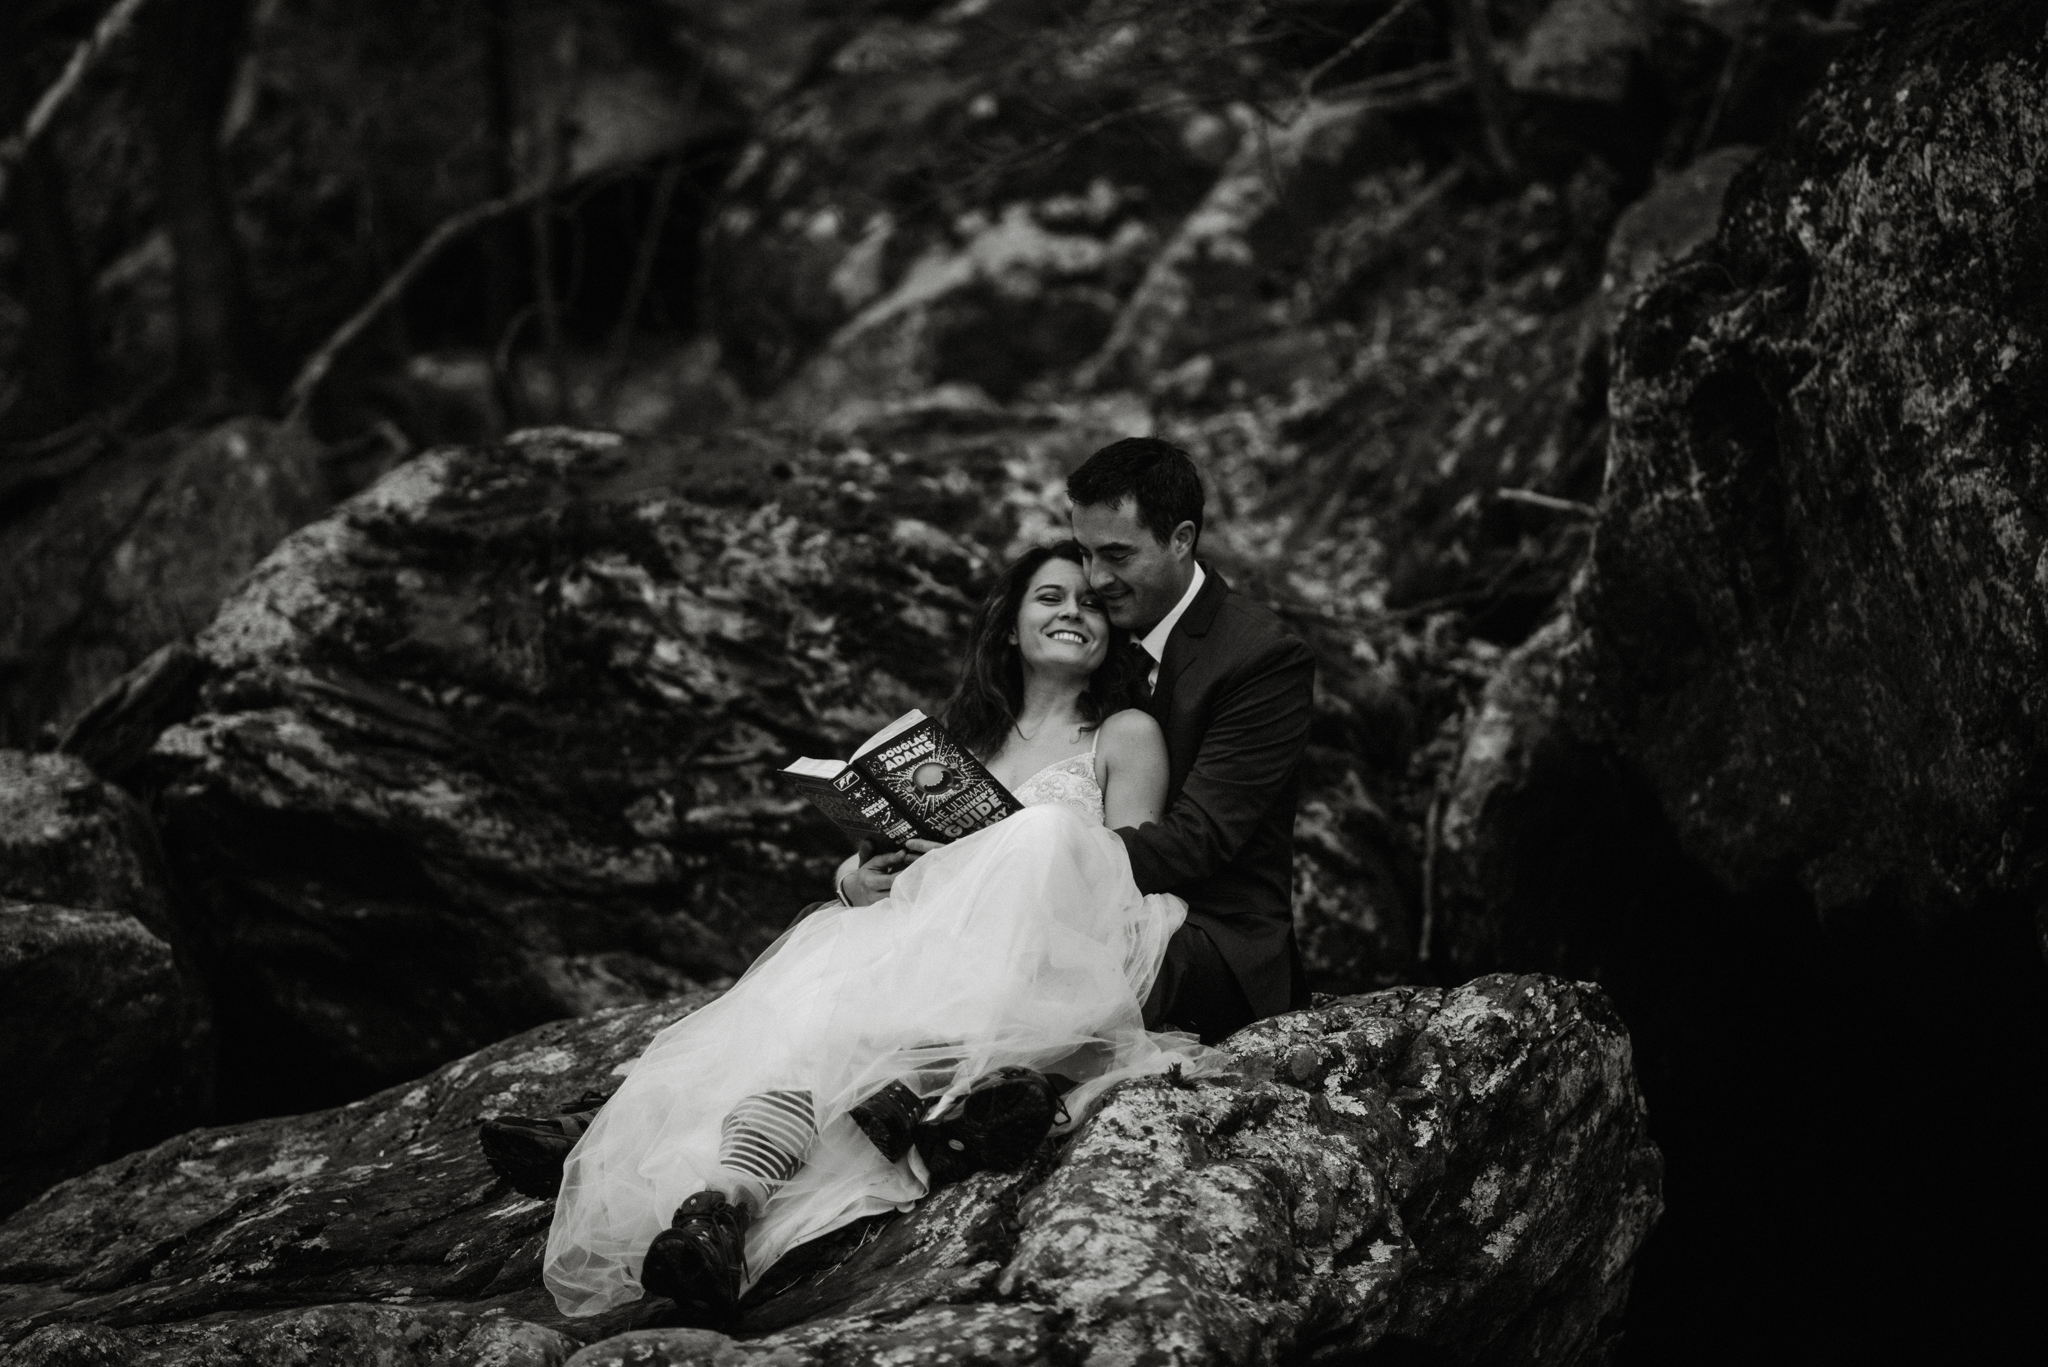 Stephanie and Steve - Shenandoah National Park Elopement - Sunrise Hiking Elopement - Adventurous Elopement - Virginia Elopement Photographer - Shenandoah national Park Wedding Photographer - White Sails Creative_33.jpg